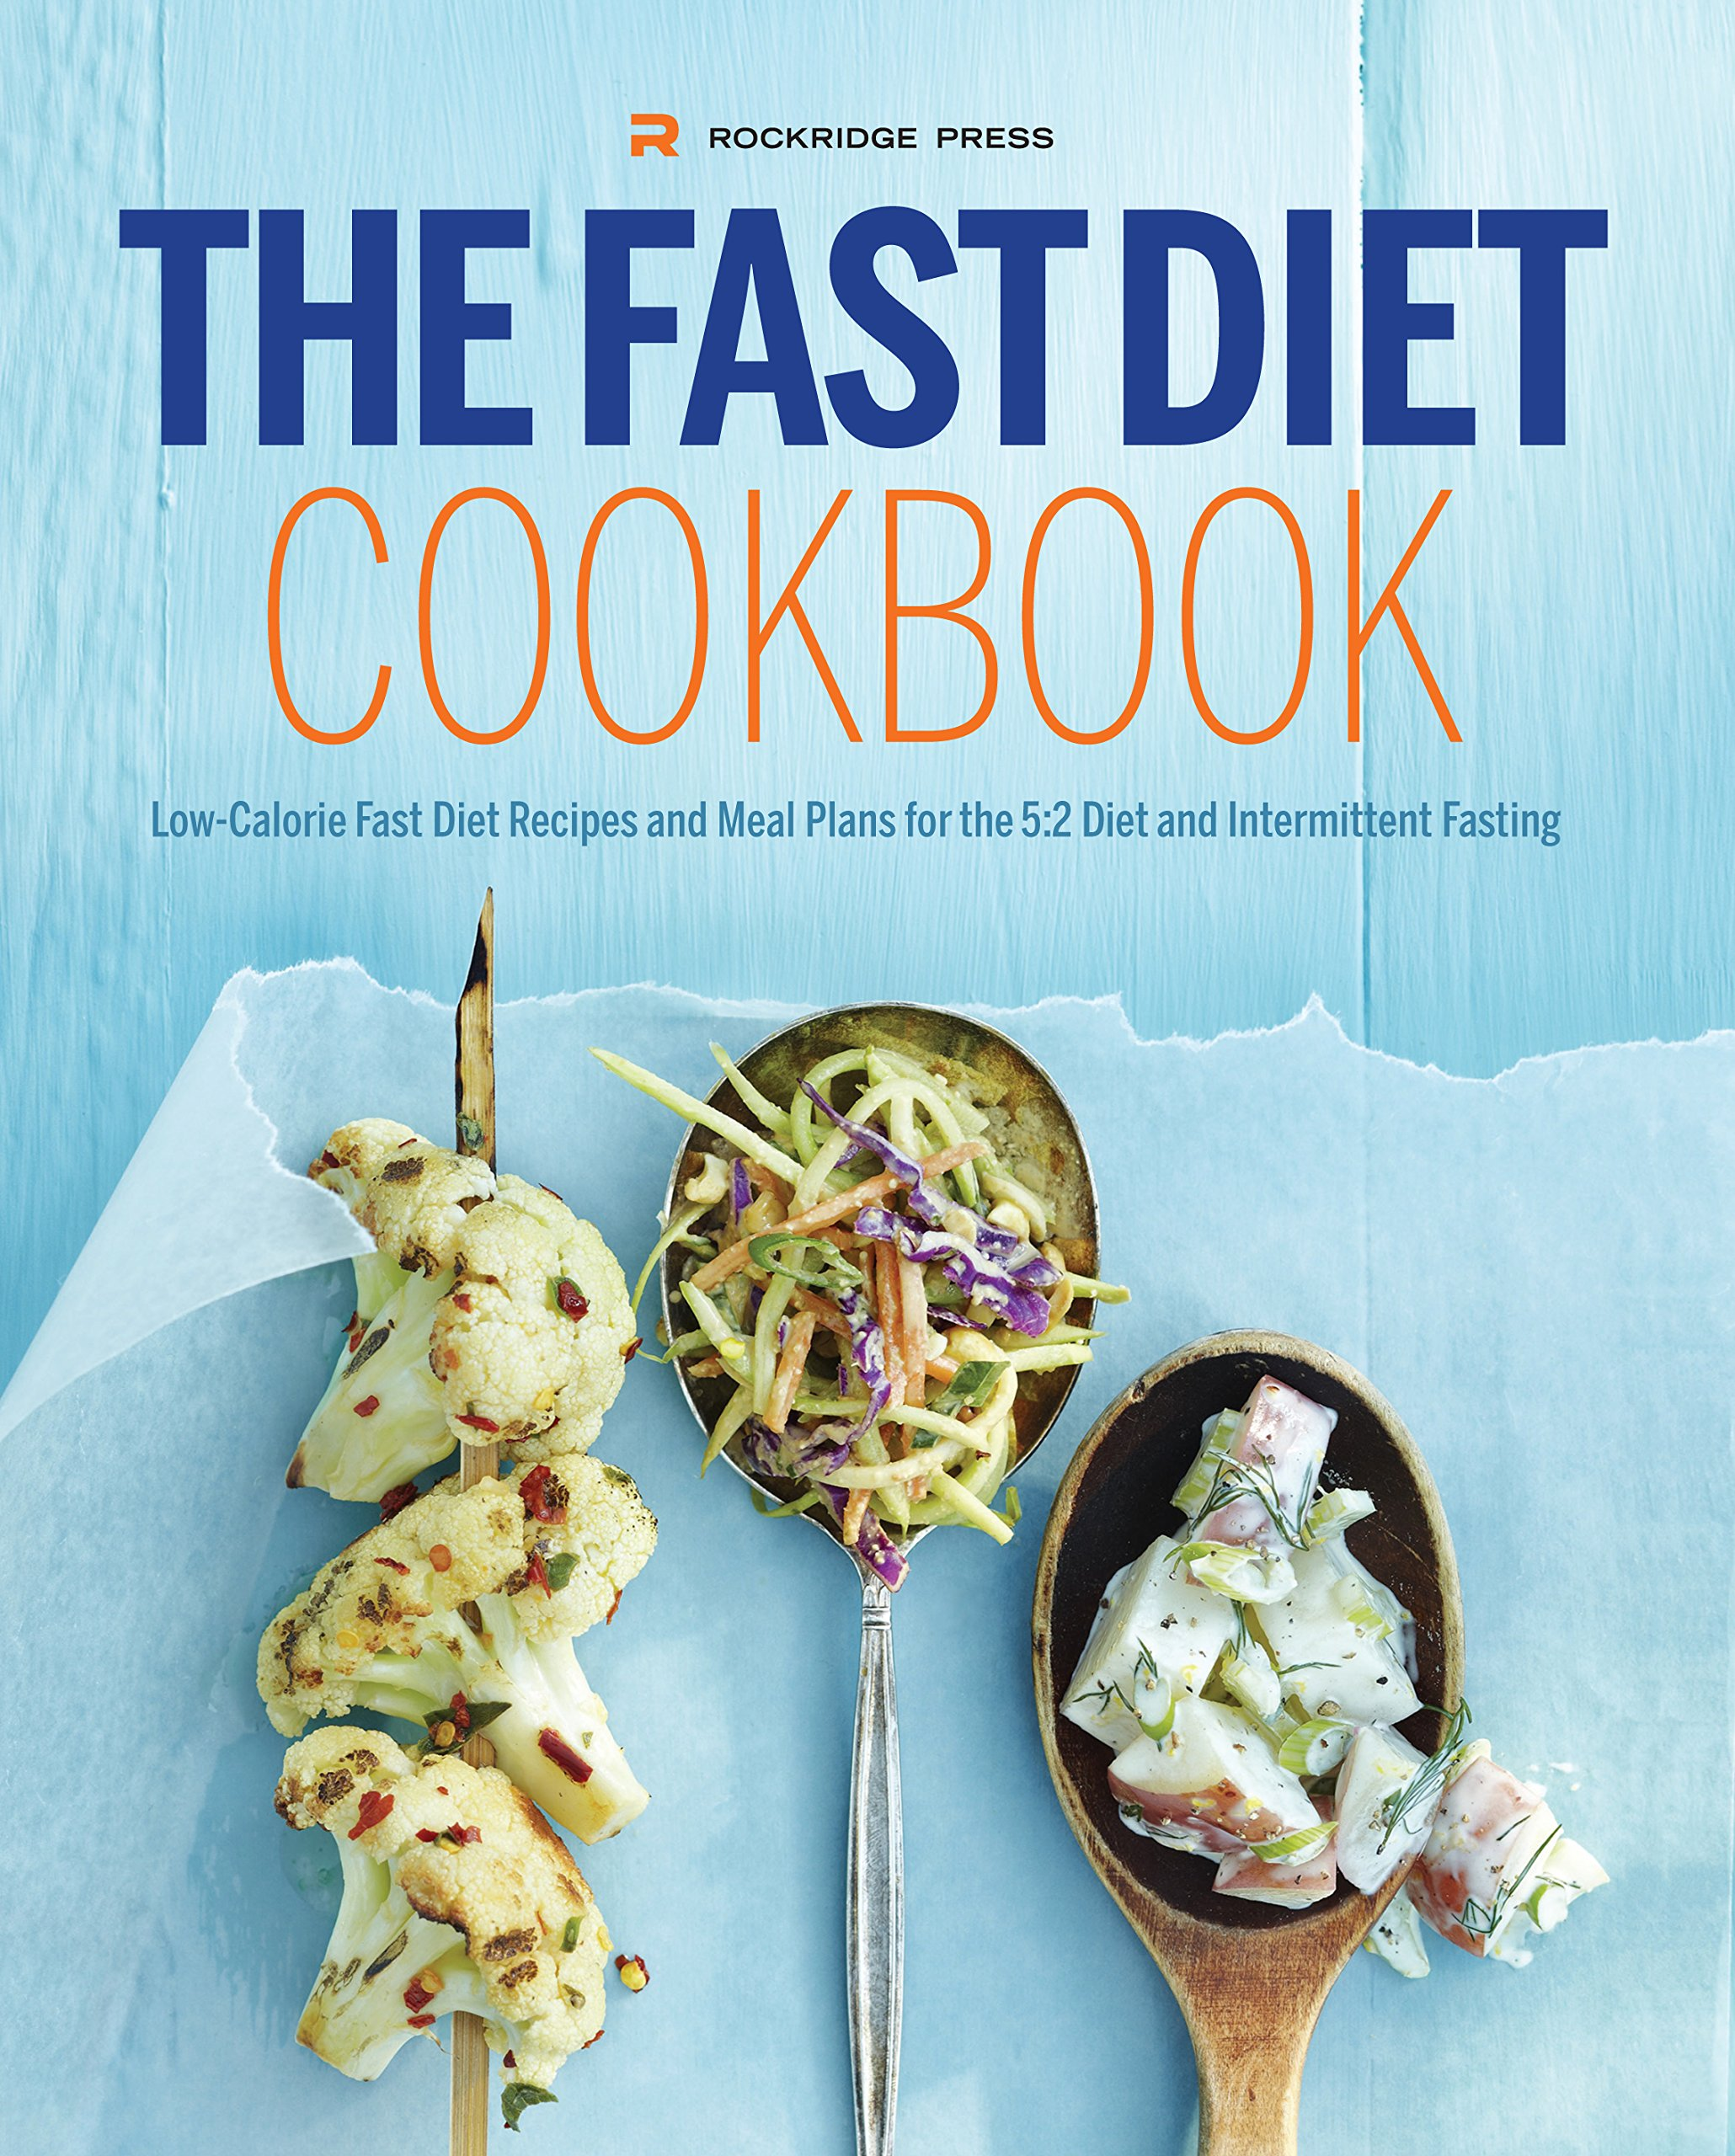 Read Online Fast Diet Cookbook: Low-Calorie Fast Diet Recipes and Meal Plans for the 5:2 Diet and Intermittent Fasting ebook